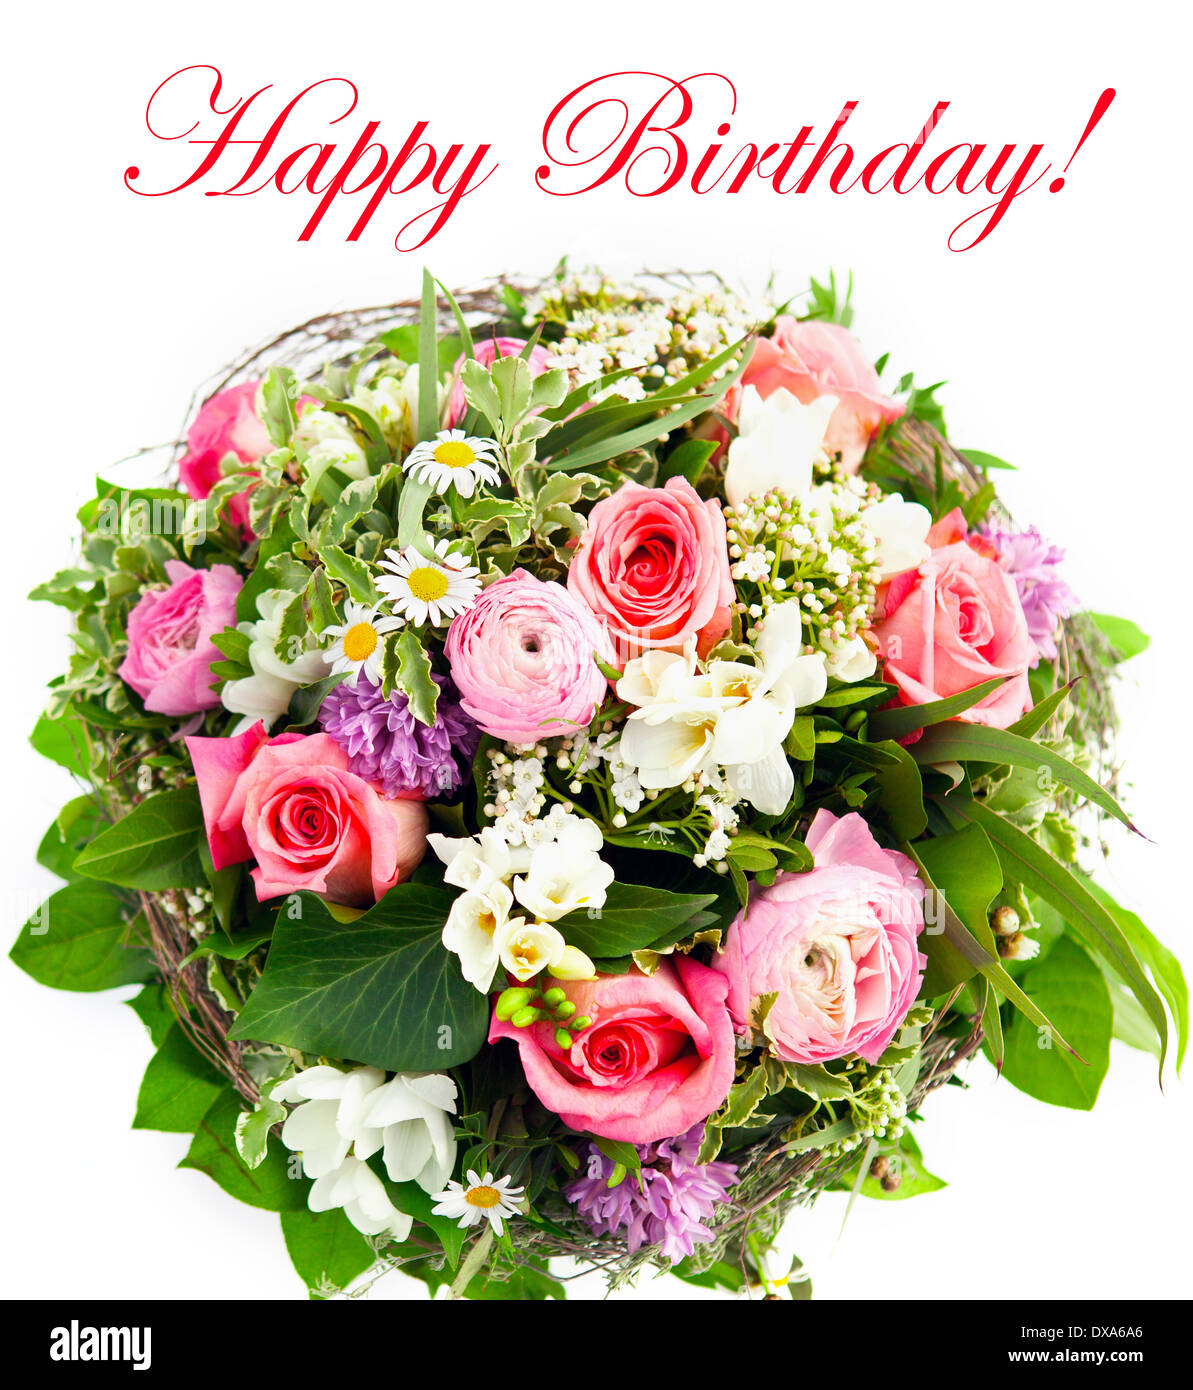 Happy birthday colorful spring flowers bouquet stock photo happy birthday colorful spring flowers bouquet izmirmasajfo